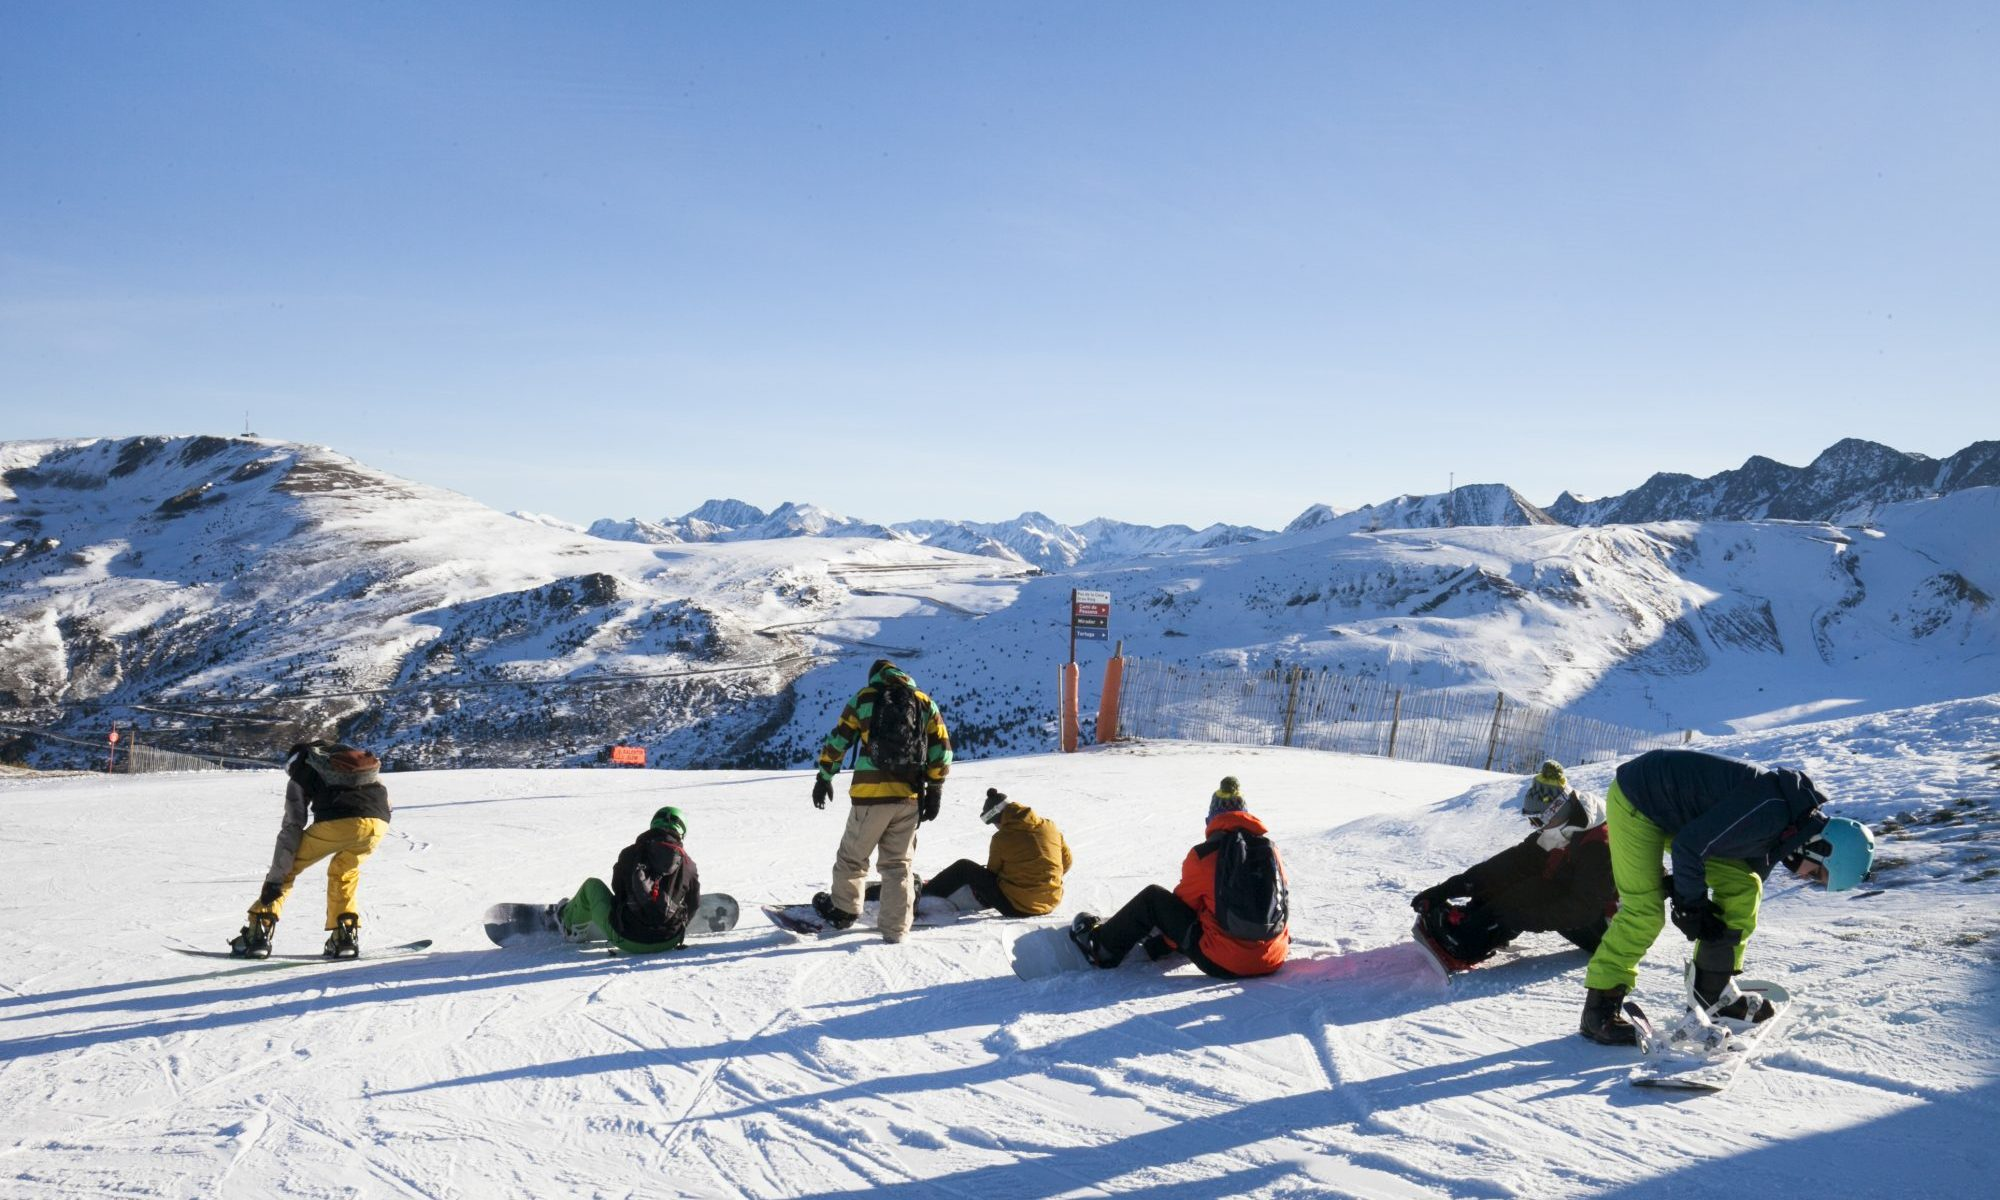 Photo: Grandvalira, Andorra. HOW WOULD A NO-DEAL BREXIT AFFECT THE TRAVEL INDUSTRY? MPI BROKERS GIVES ITS INTERPRETATION OF INFORMATION FROM VARIOUS SOURCES.